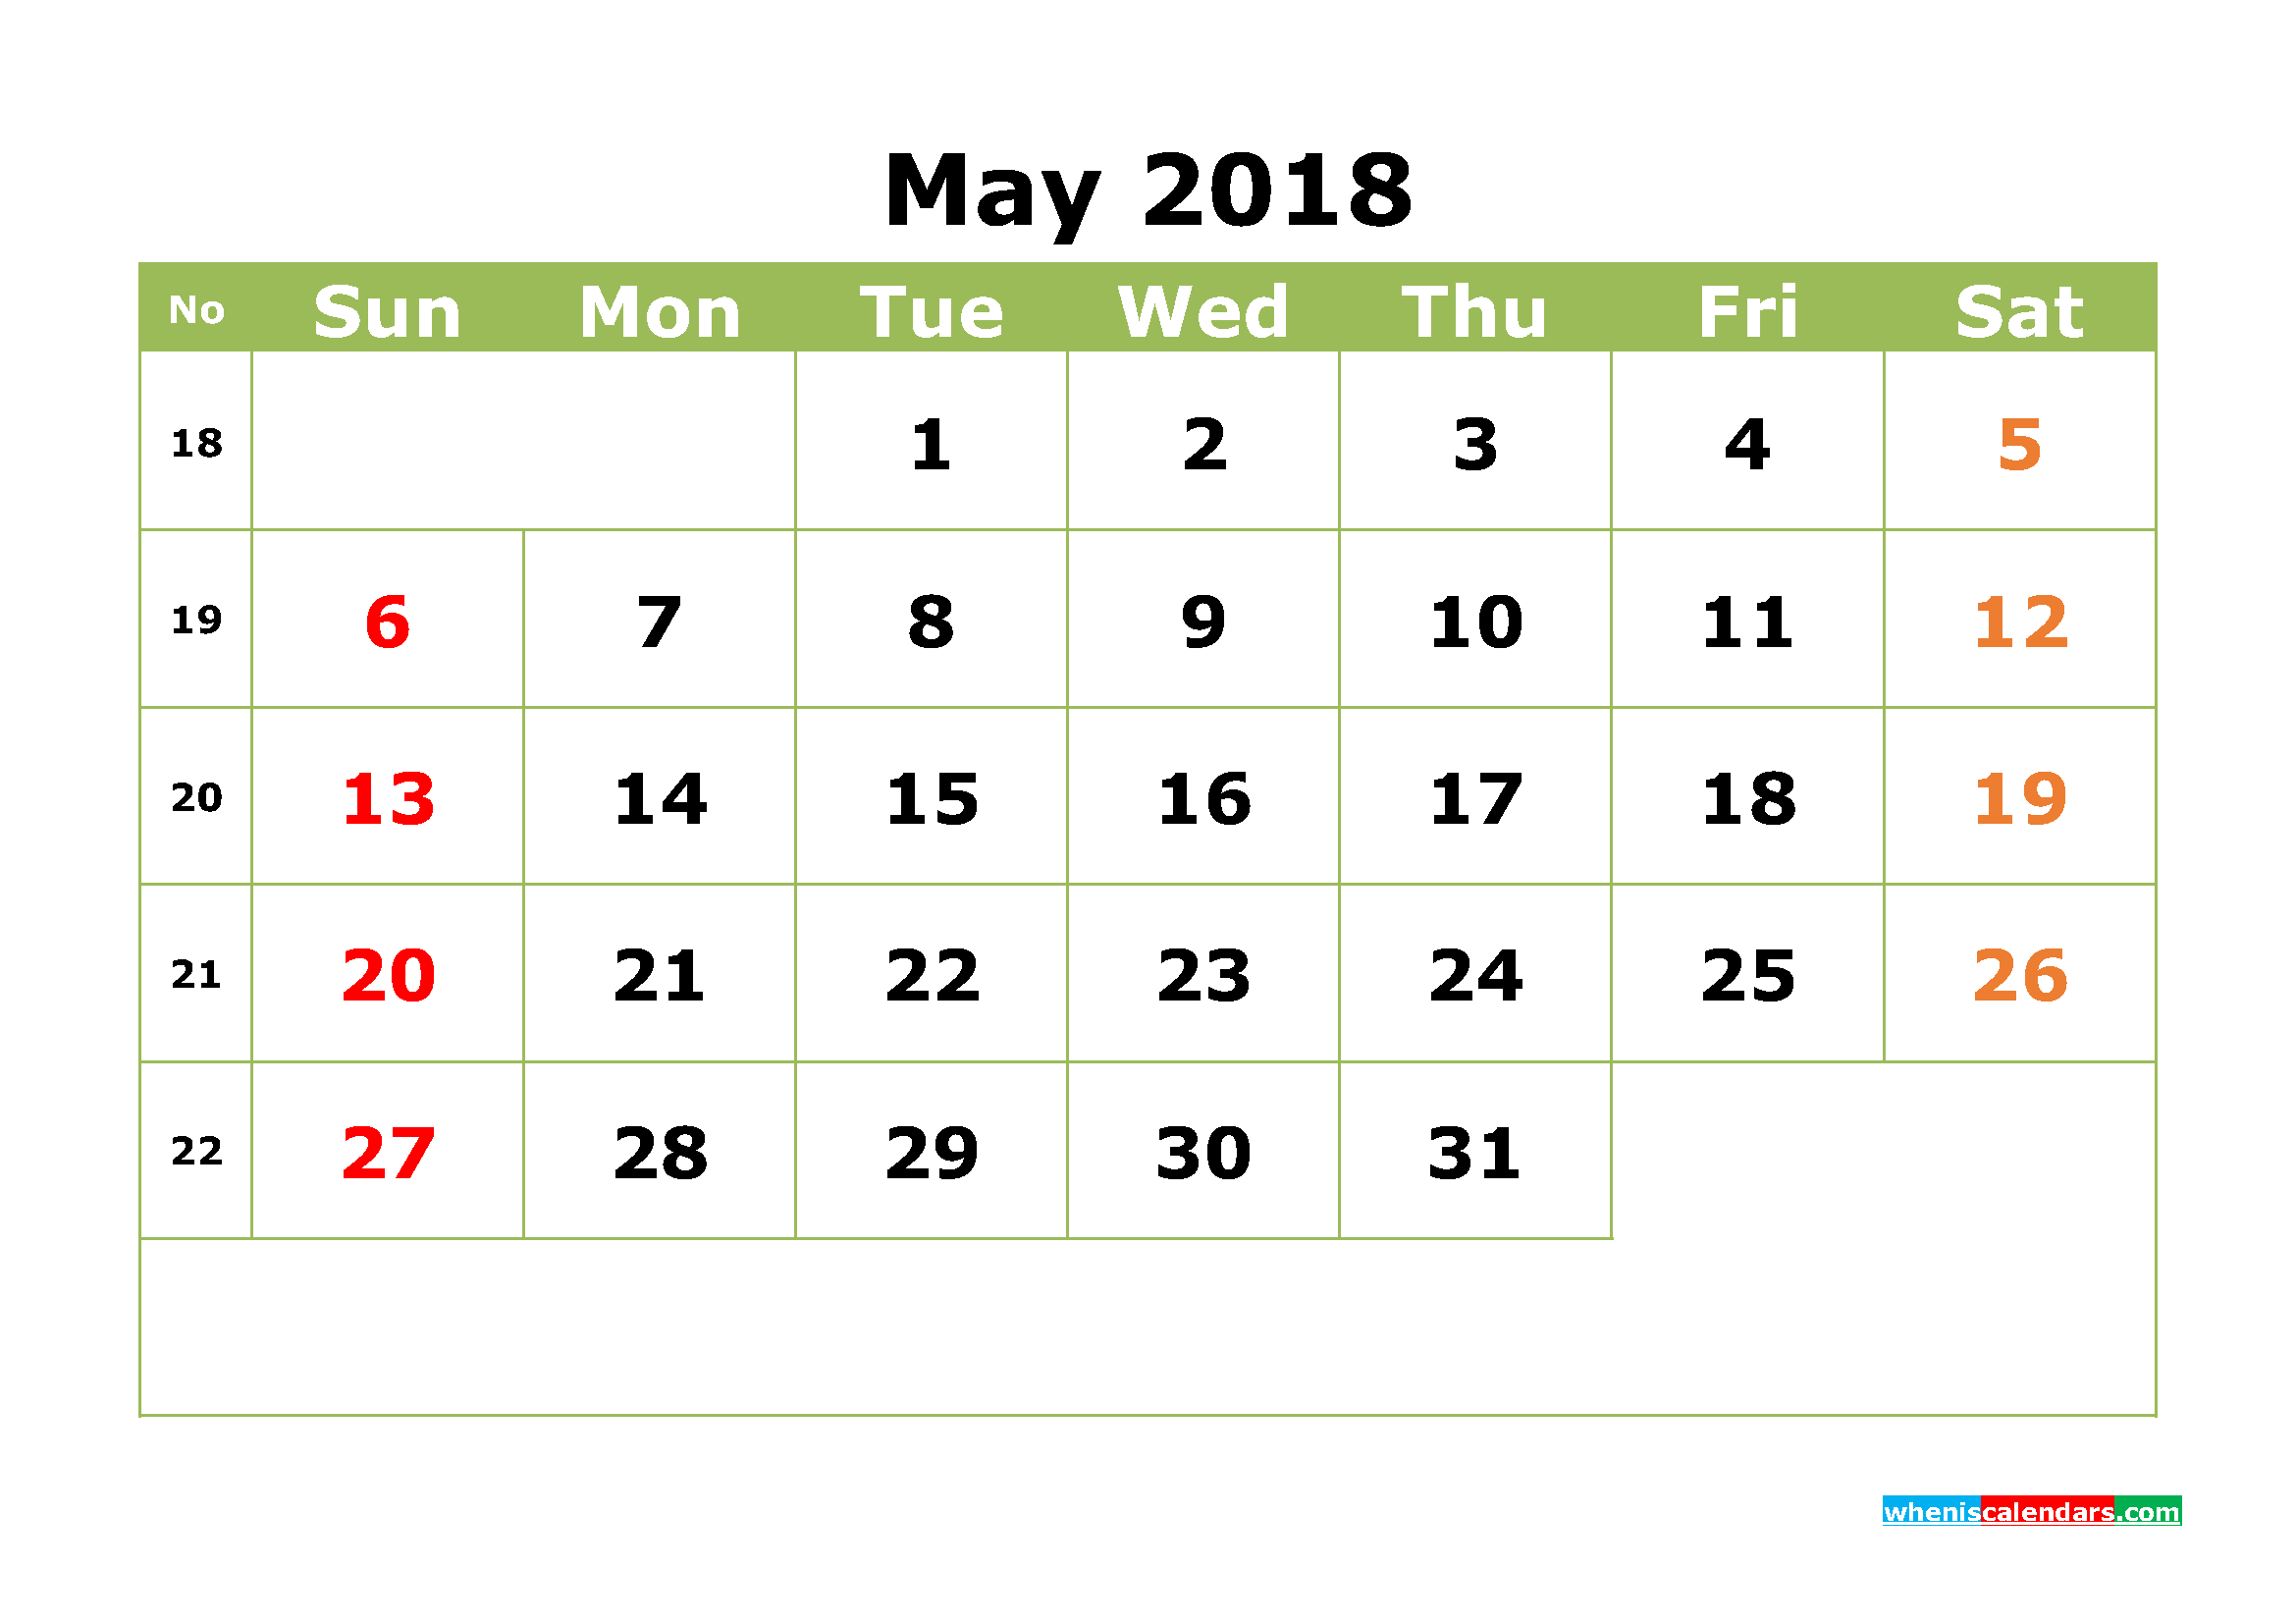 May 2018 Calendar Printable Monthly Calendar with Week Numbers